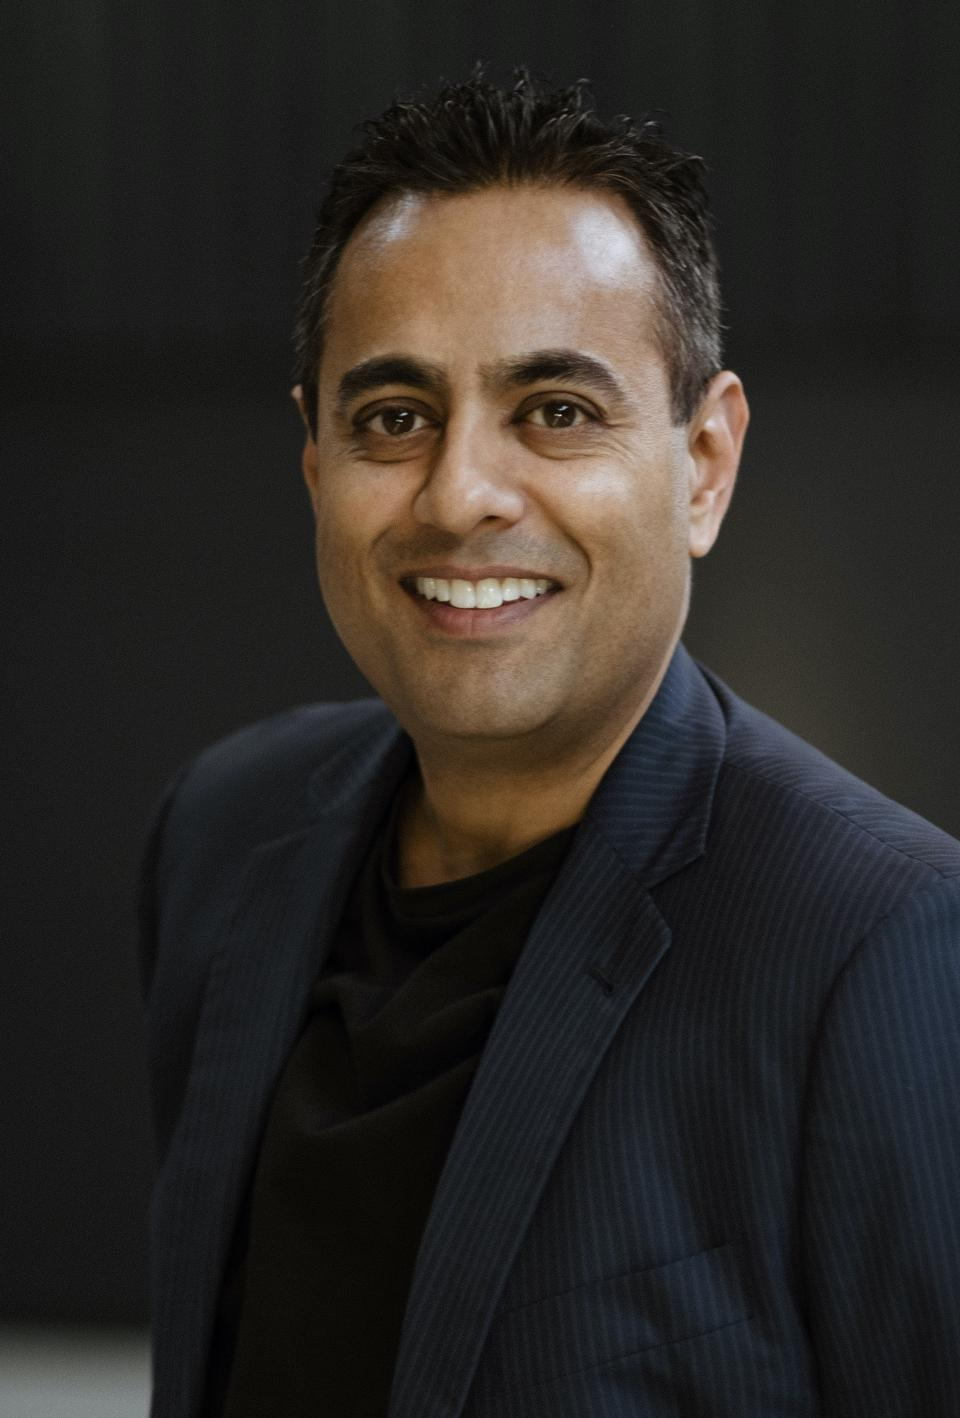 Head shot of CEO and co-founder of DEMAND, Parag Vaish